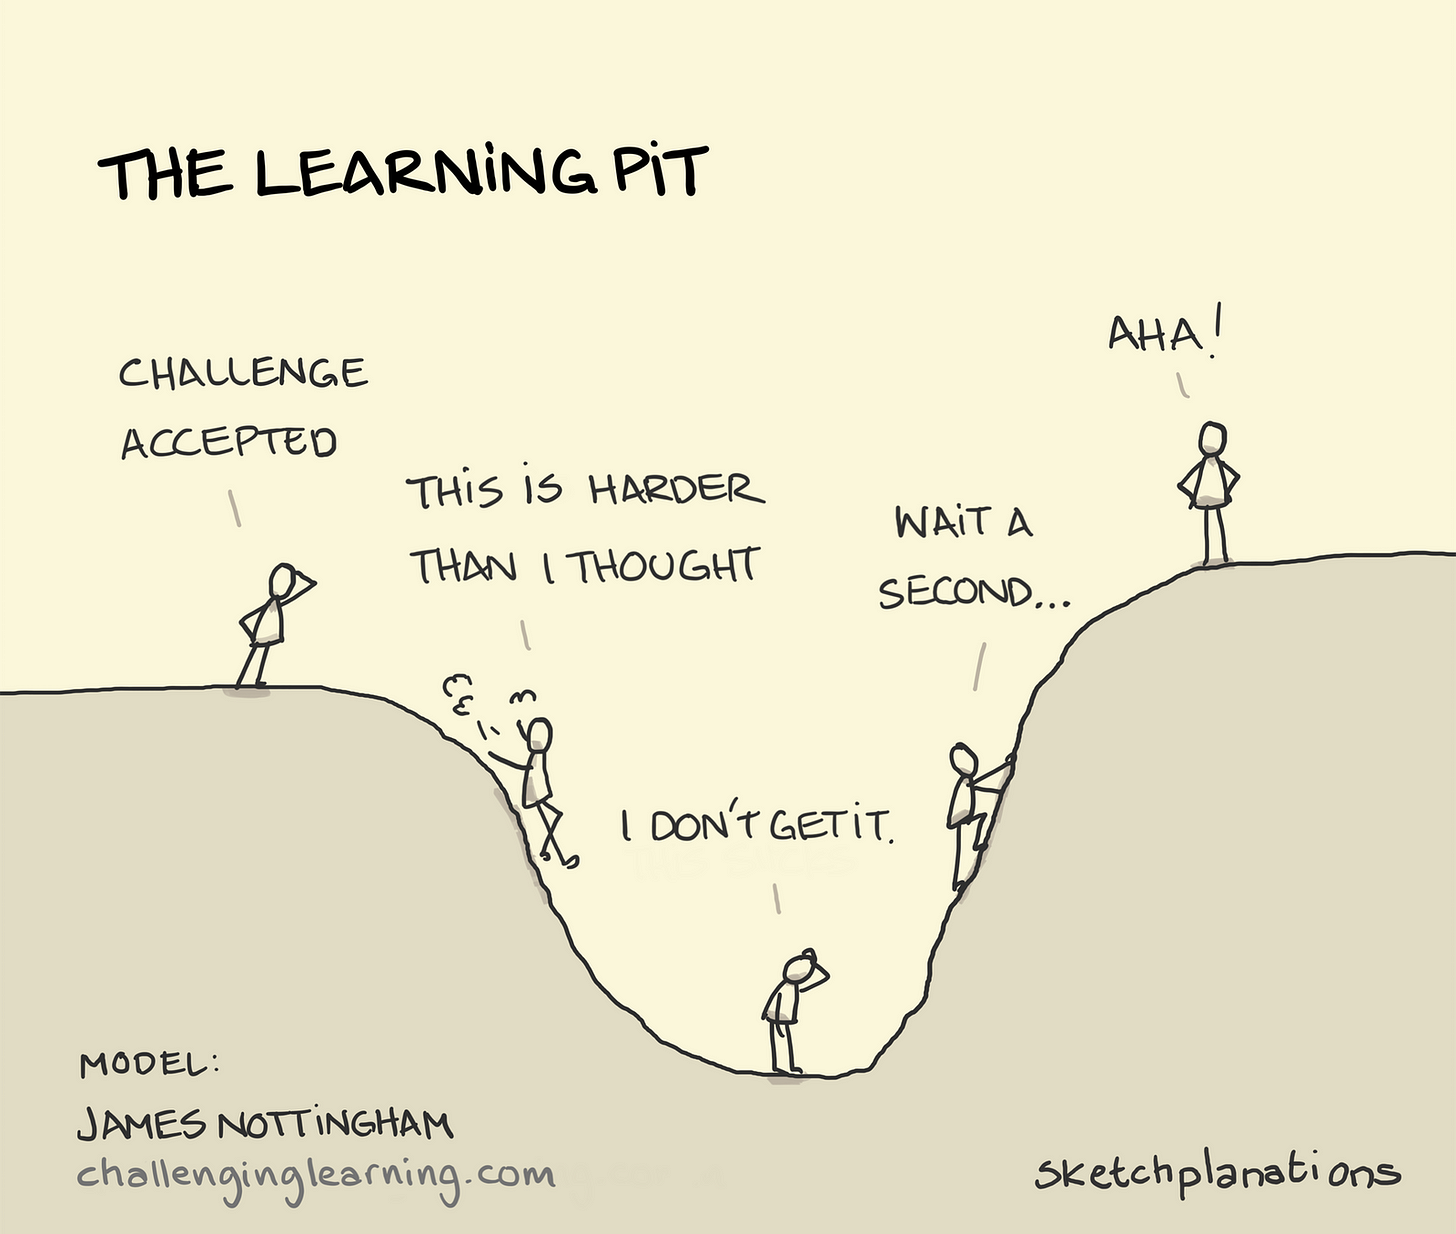 The Learning Pit - Sketchplanations